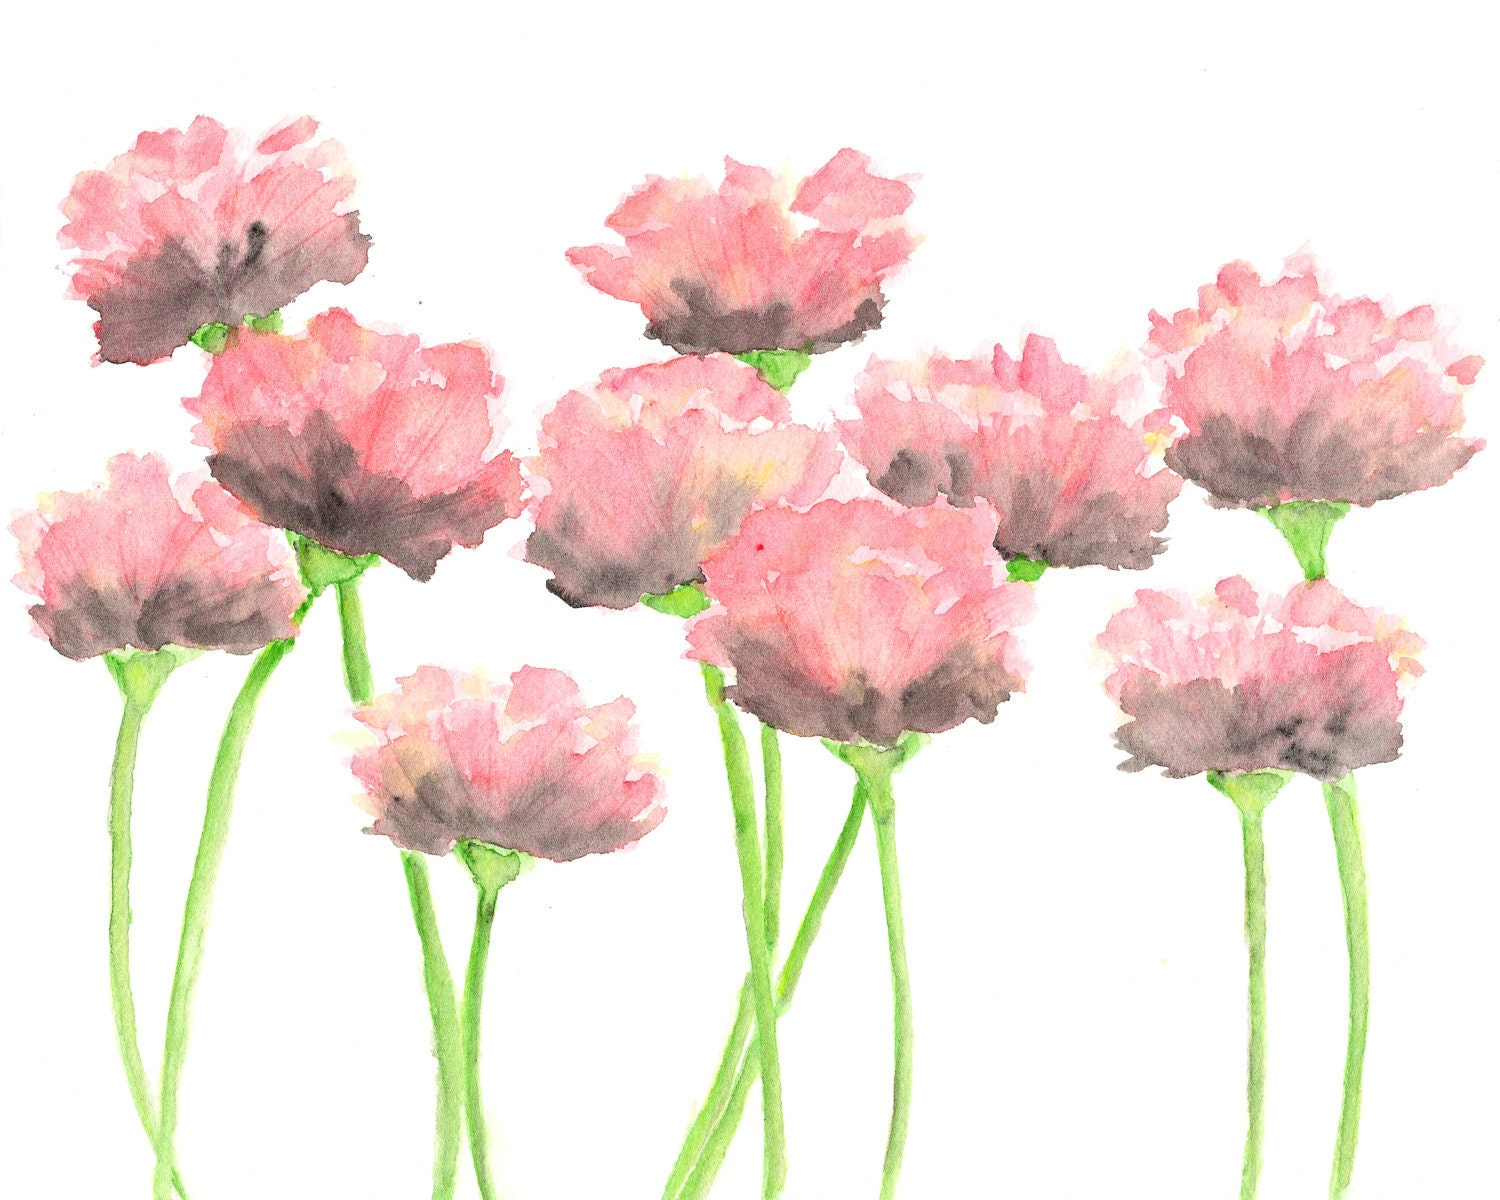 Nature Watercolor Flowers Painting Pink Poppies Abstract Etsy